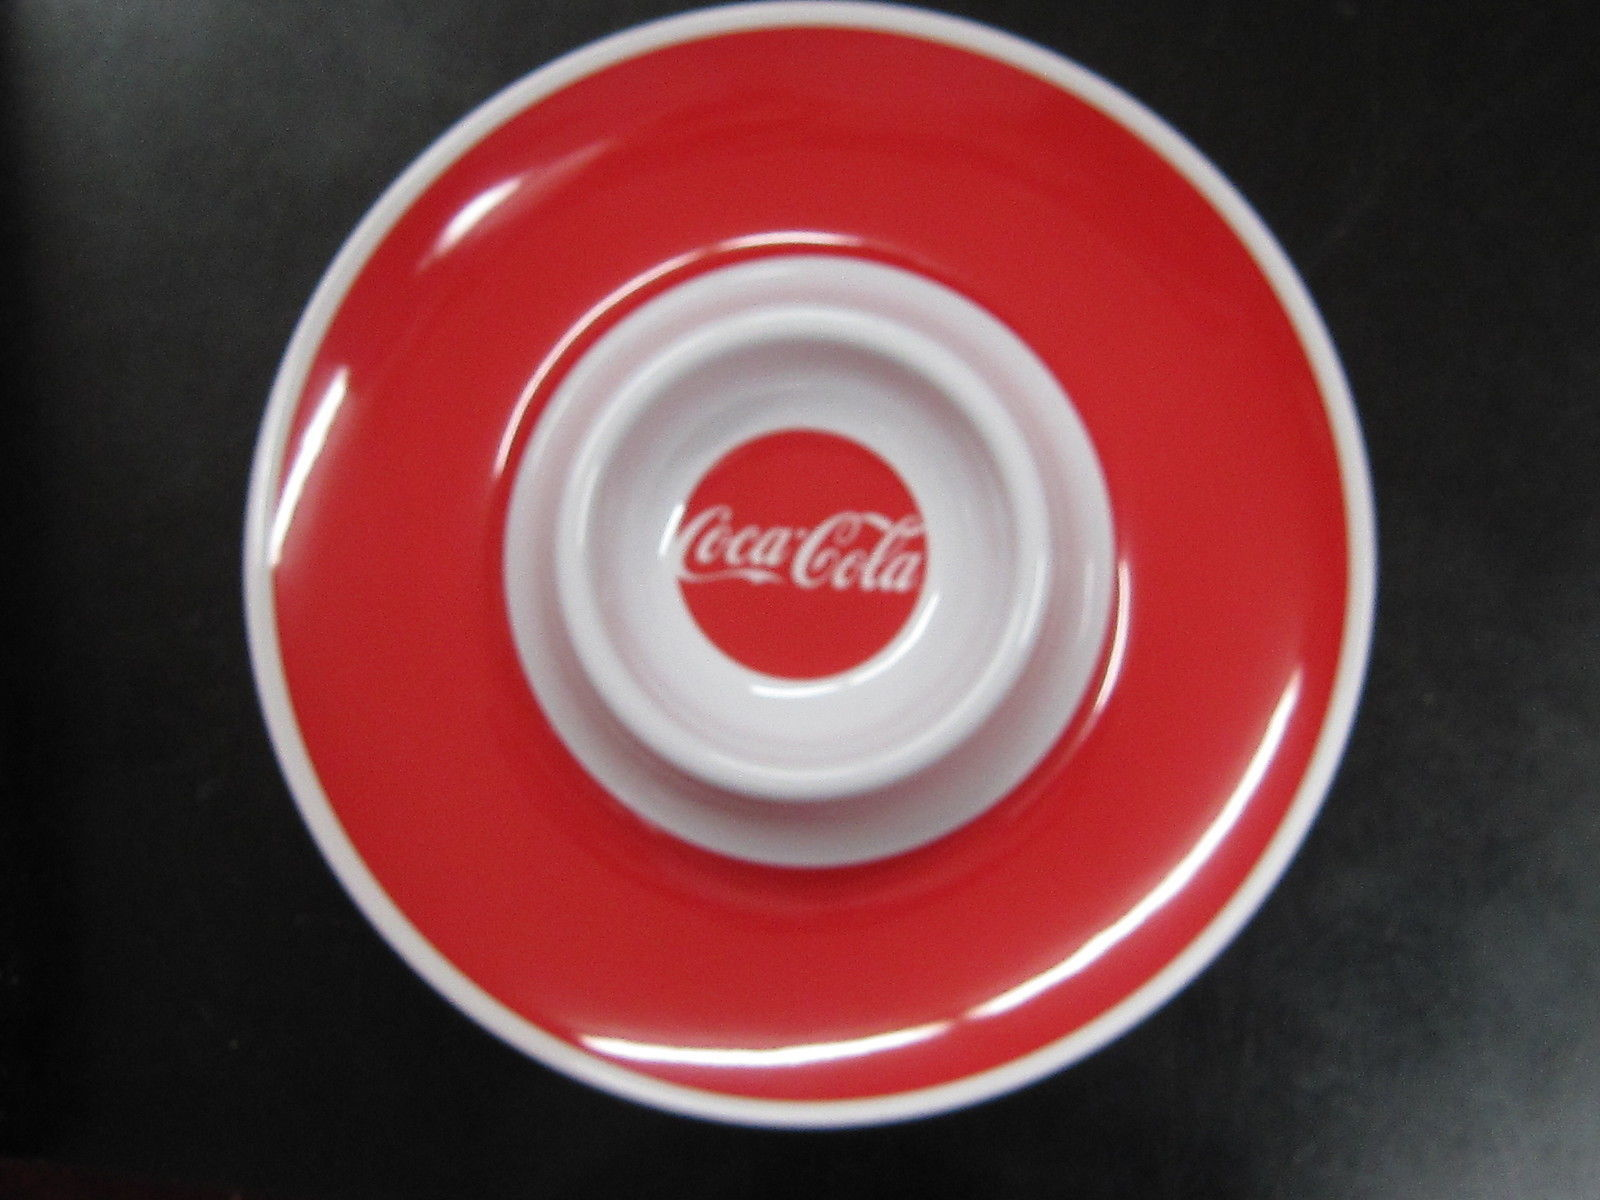 Primary image for Coca-Cola Chip & Dip Serving Dish - NEW